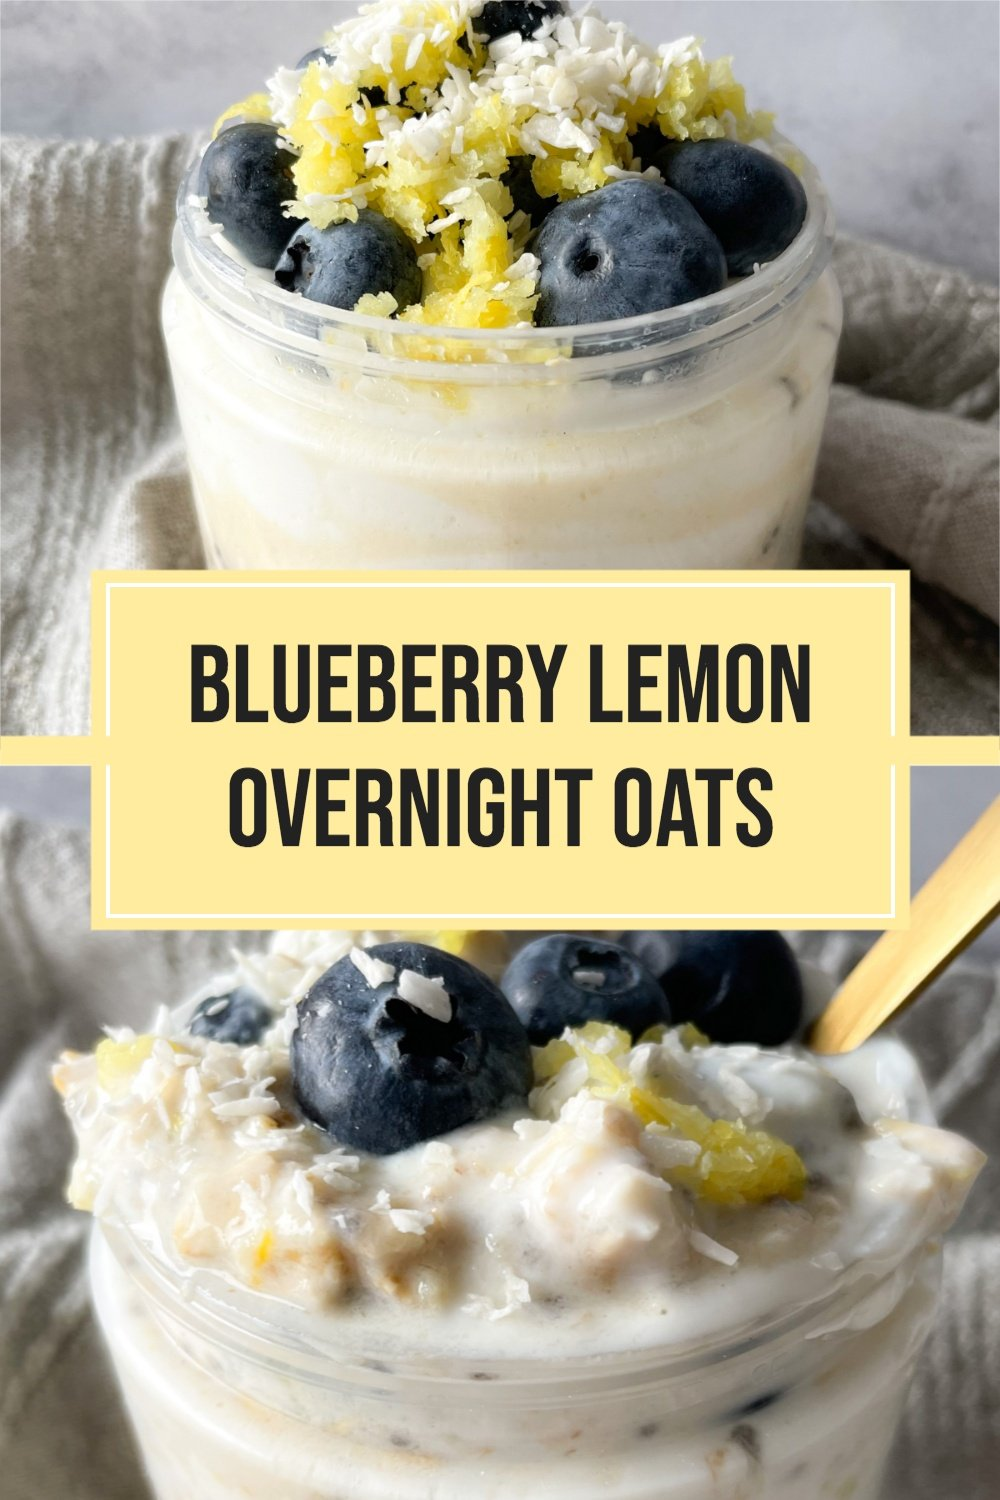 2 photos of overnight oats with text overlay